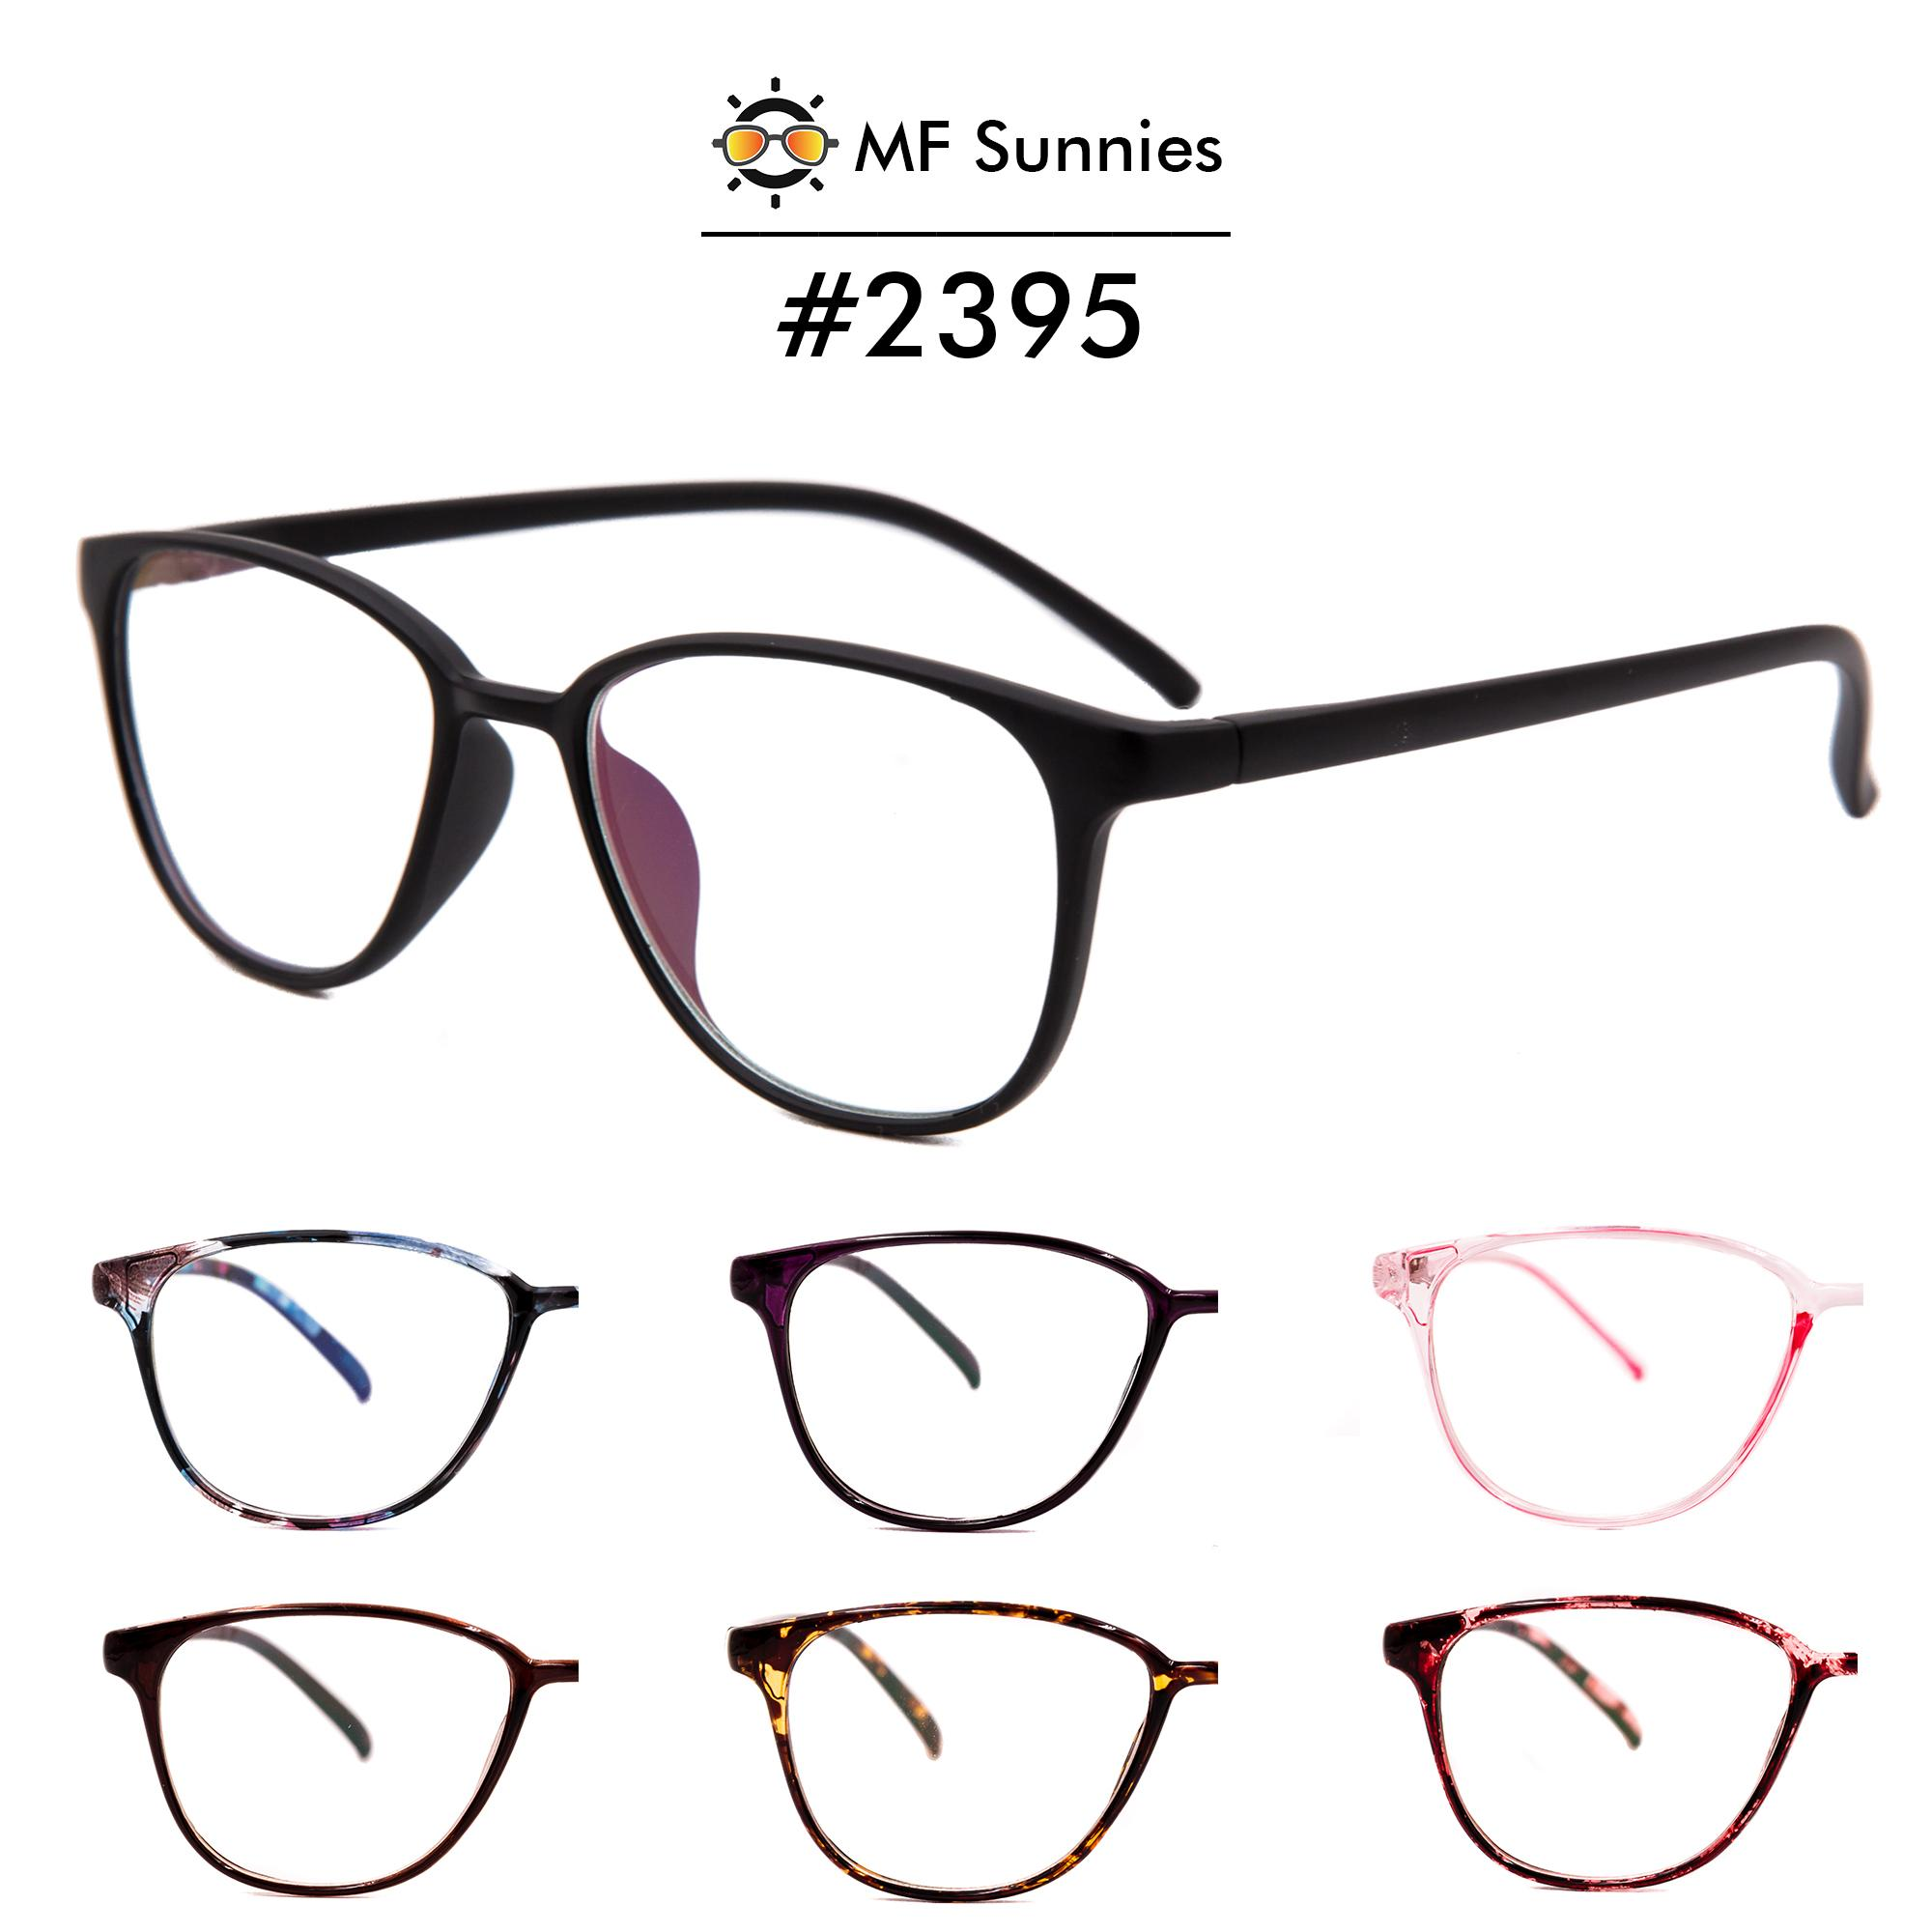 2e778665725 MFSunnies Computer Anti Blue light Radiation Eyewear High quality frame  Premium Acetate material Metal Hinges